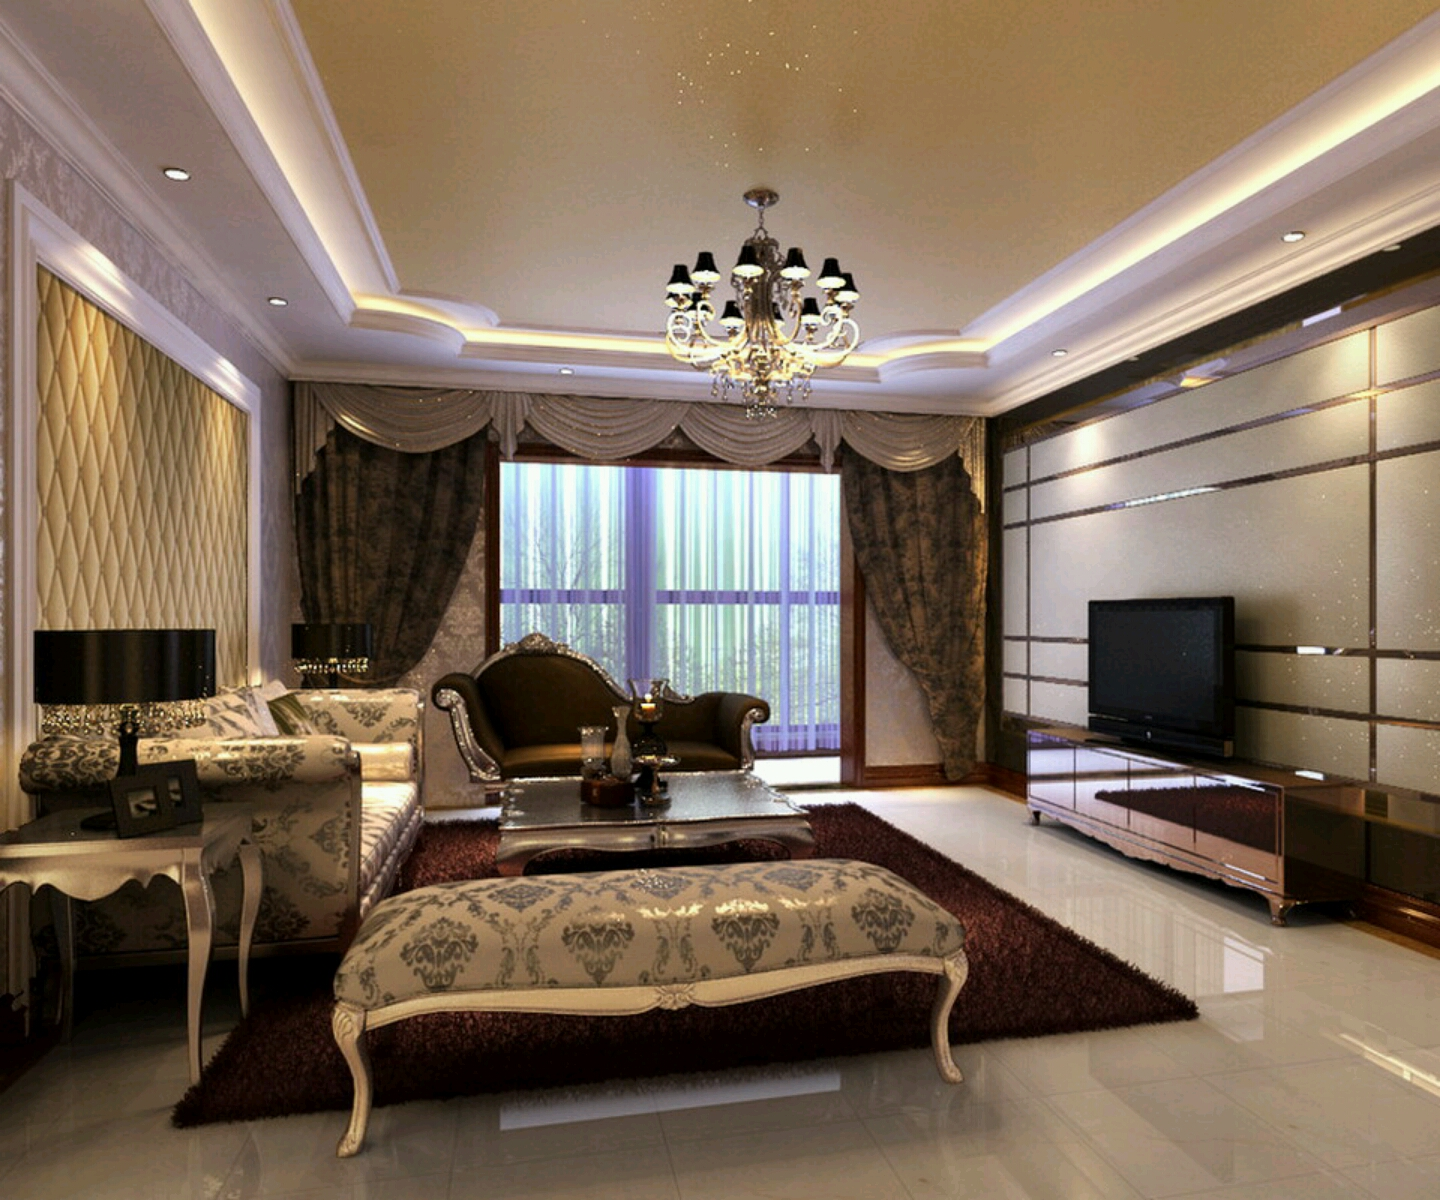 Interior decorating ideas living rooms dream house Luxury design ideas